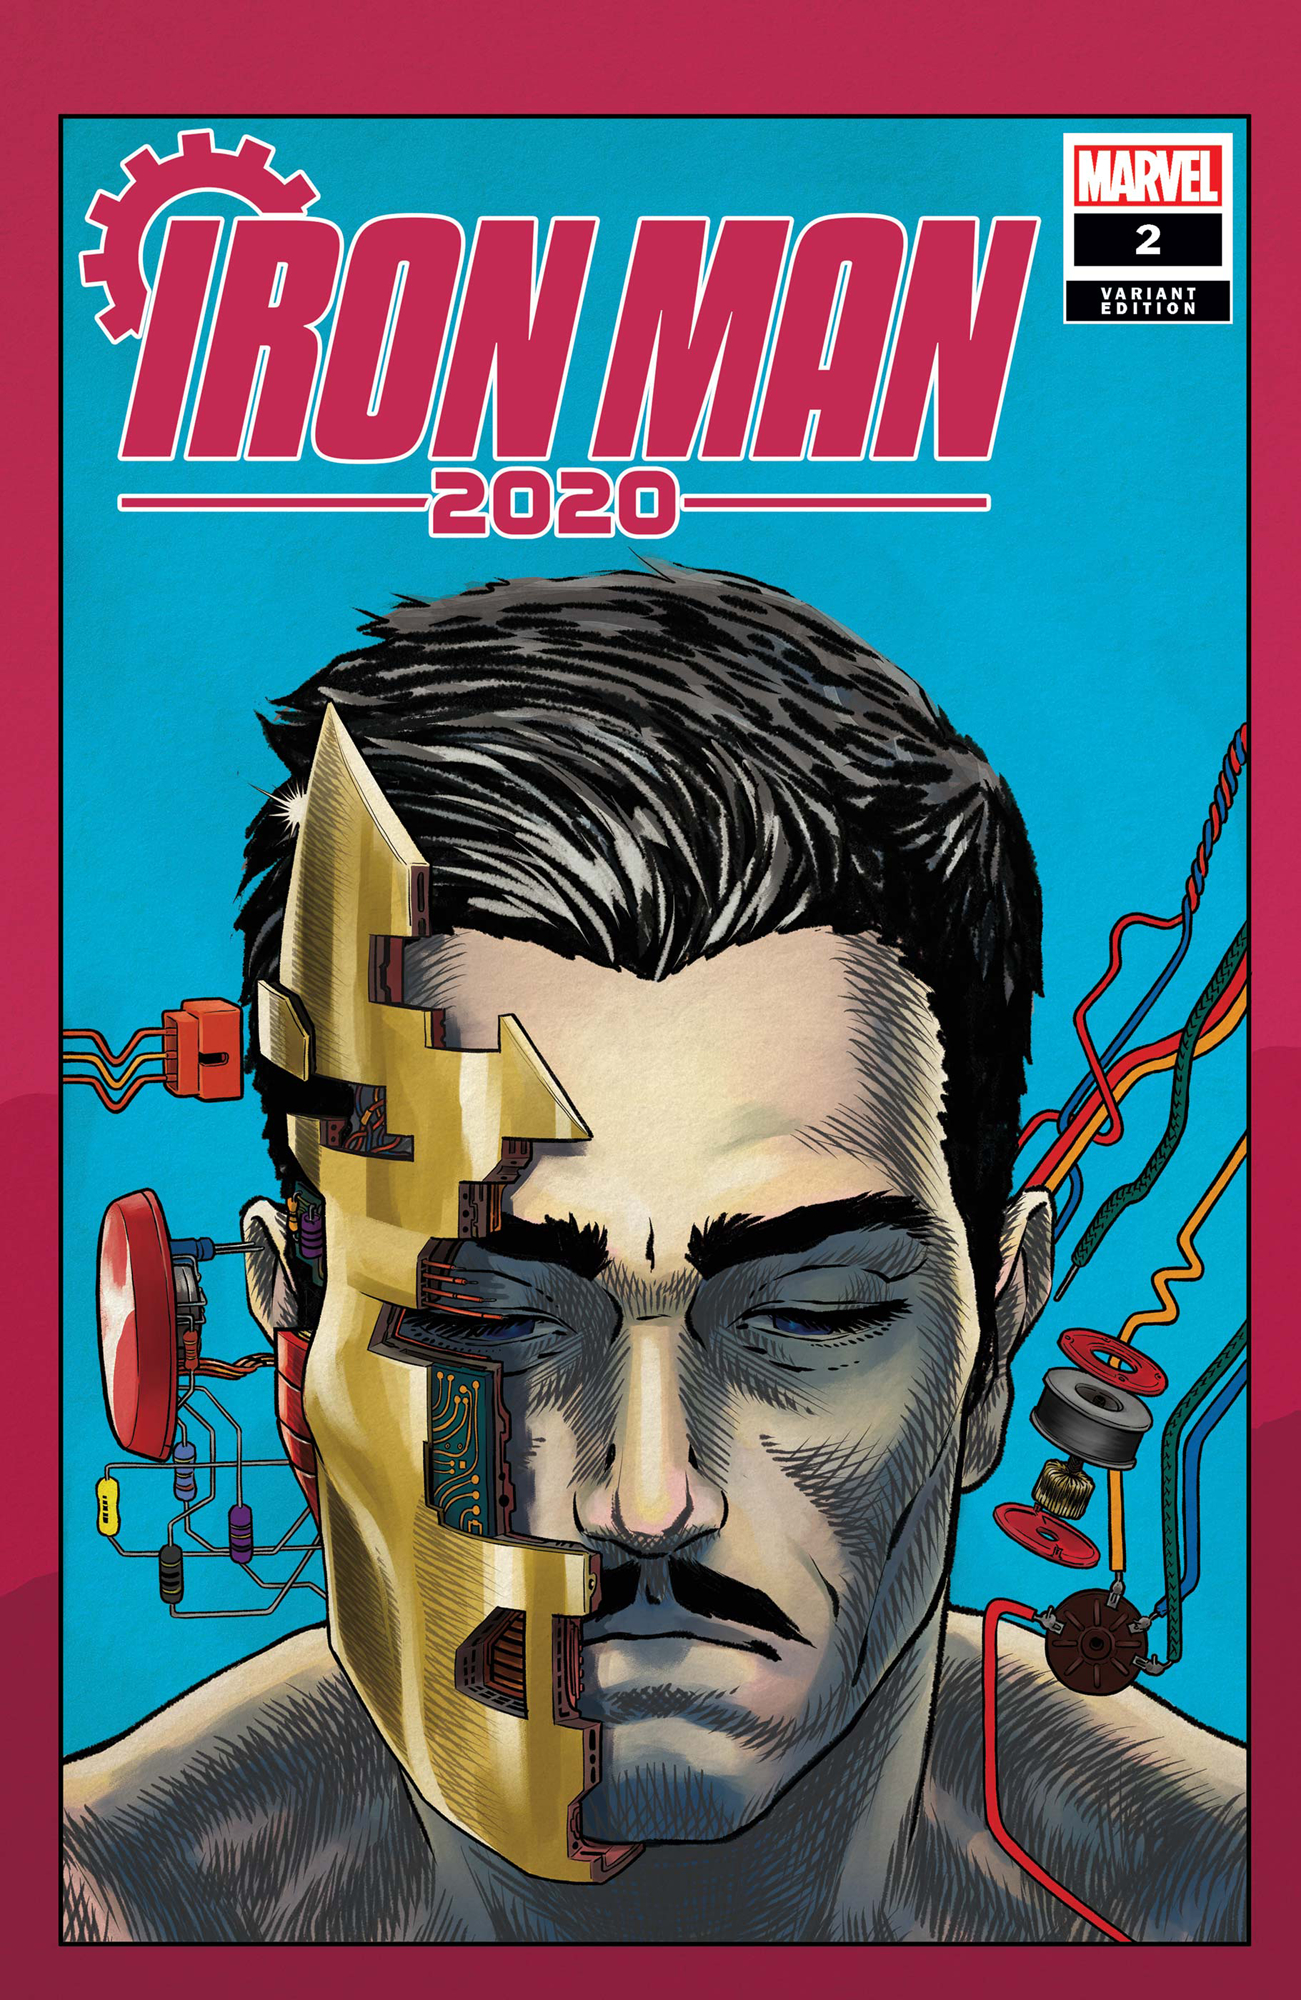 IRON MAN 2020 #2 (OF 6) SUPERLOG HEADS VAR